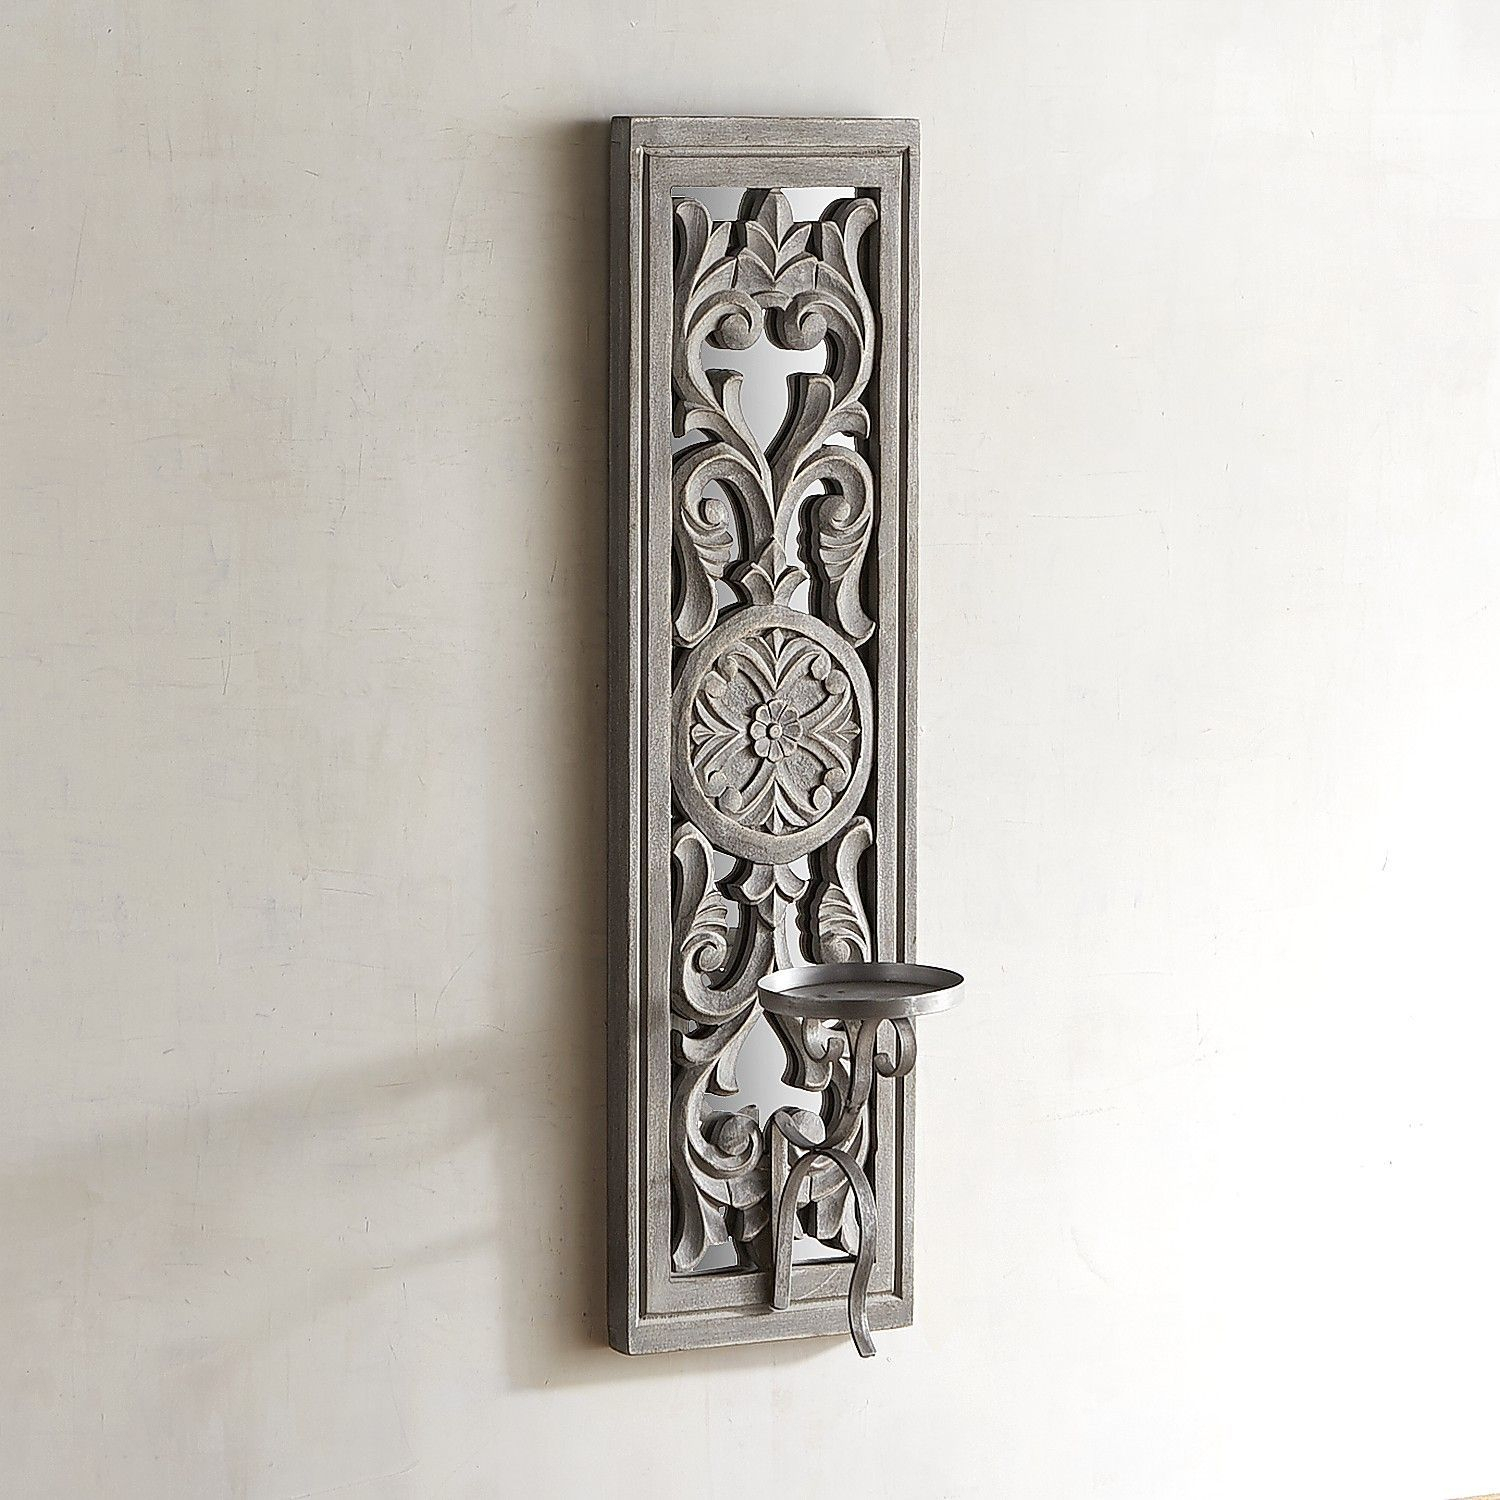 Carved White Wood Candle Holder Wall Sconce | Products In inside 1 Piece Ortie Panel Wall Decor (Image 7 of 30)